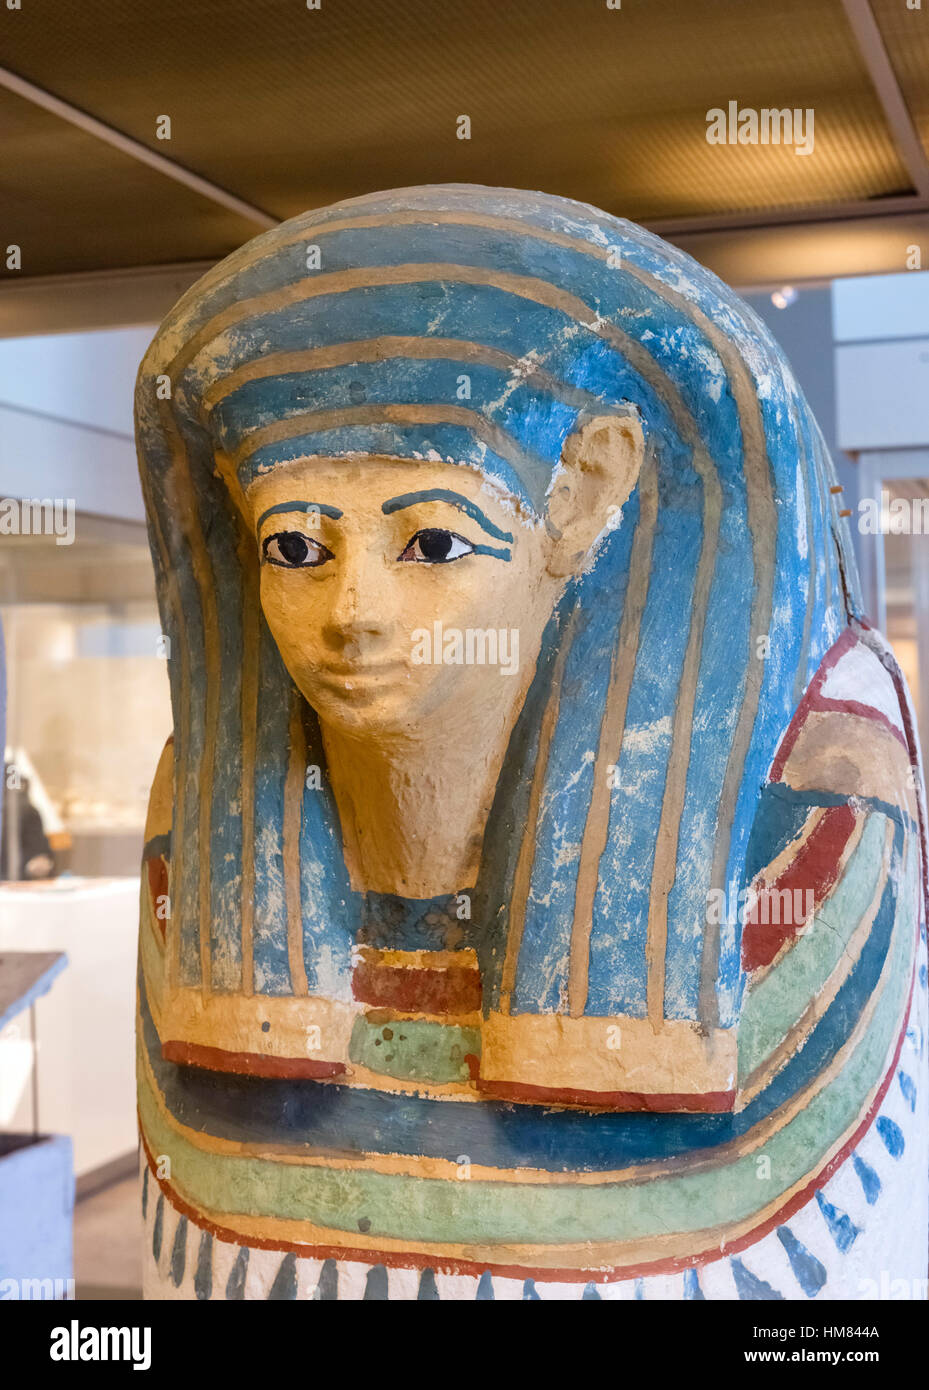 Egyptian Mummy from the burial chamber of Hatnofer and Ramose and their family - Stock Image